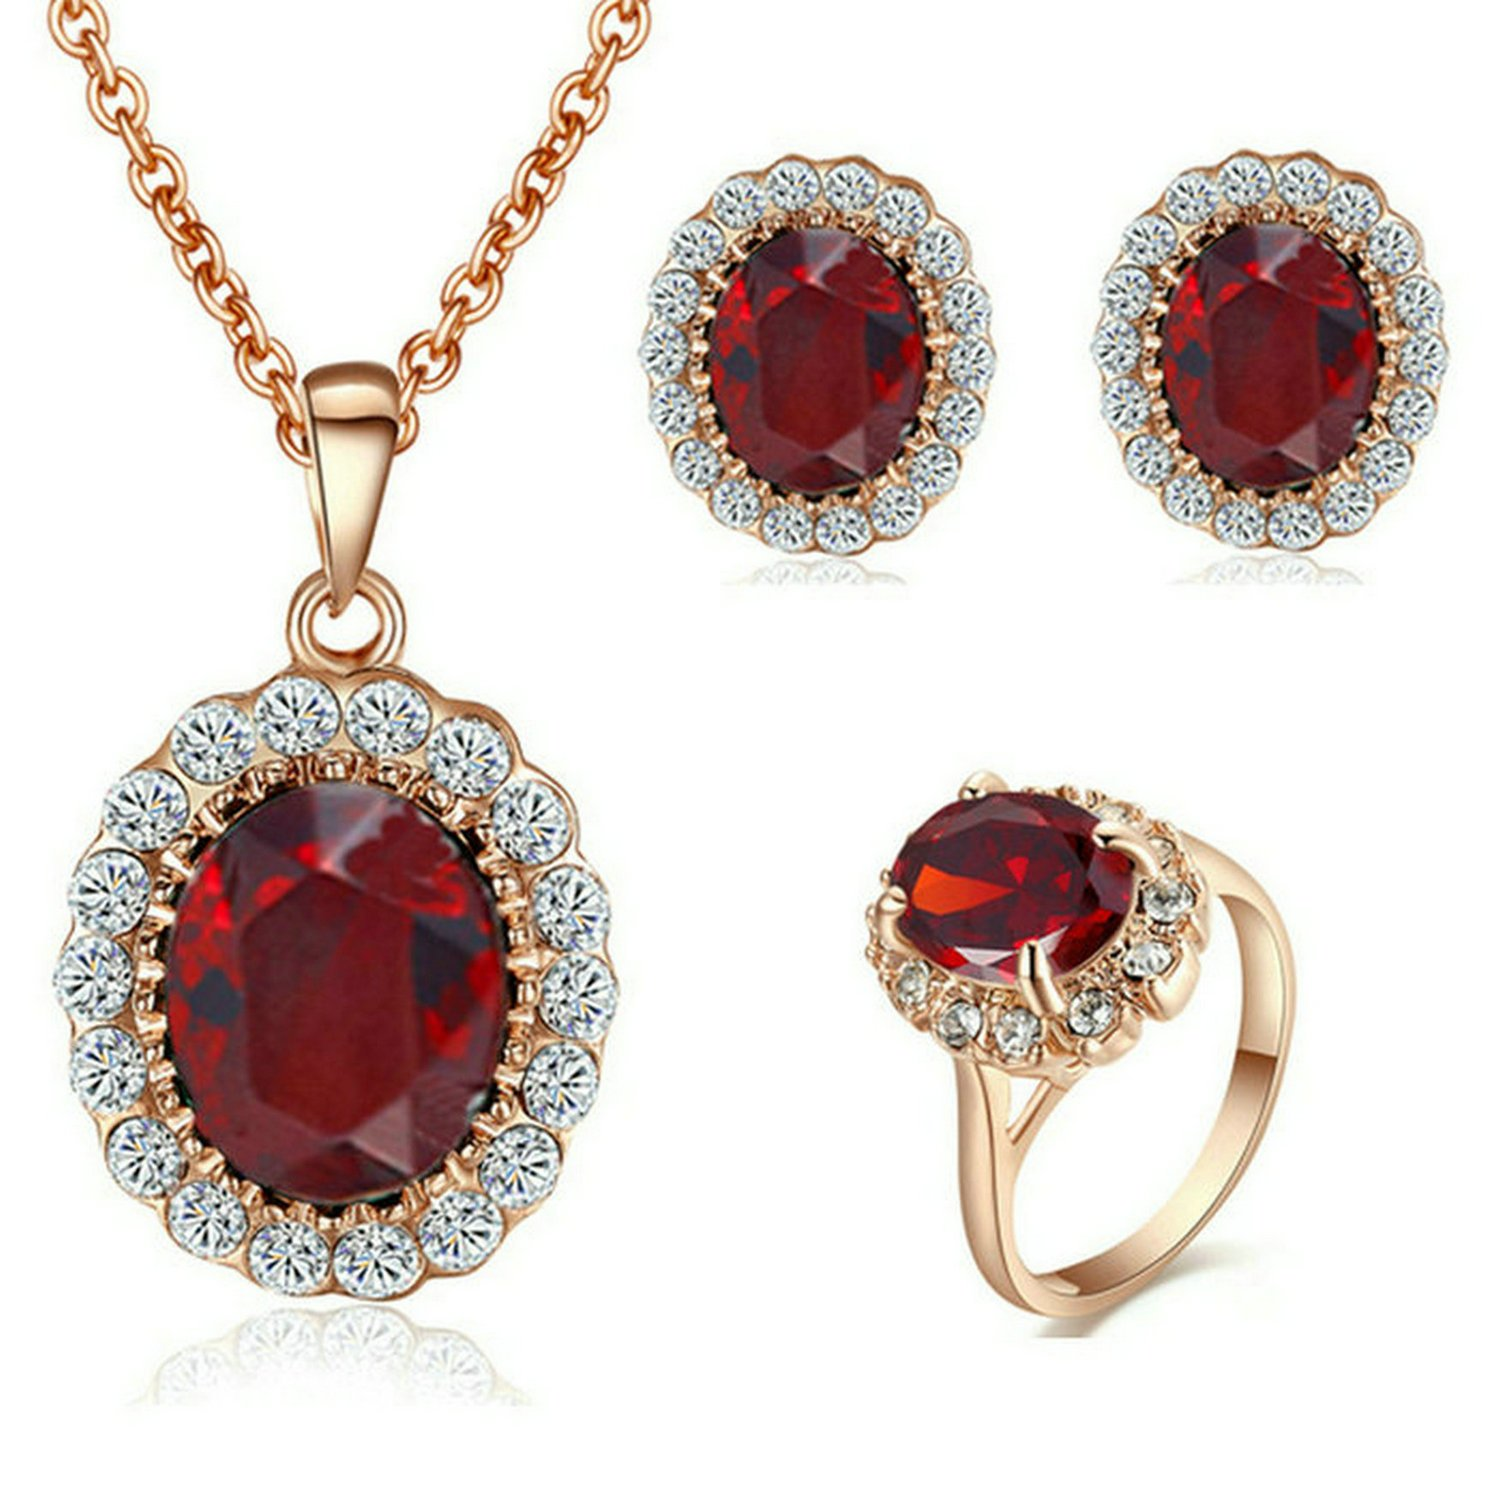 Yoursfs Halo Ruby Diamond Ring and Earrings and Necklace Sets for Women 18ct Rose Gold Plated Wedding Stone Costume Jewellery Set Bride Gift Italina S413R8-9.5